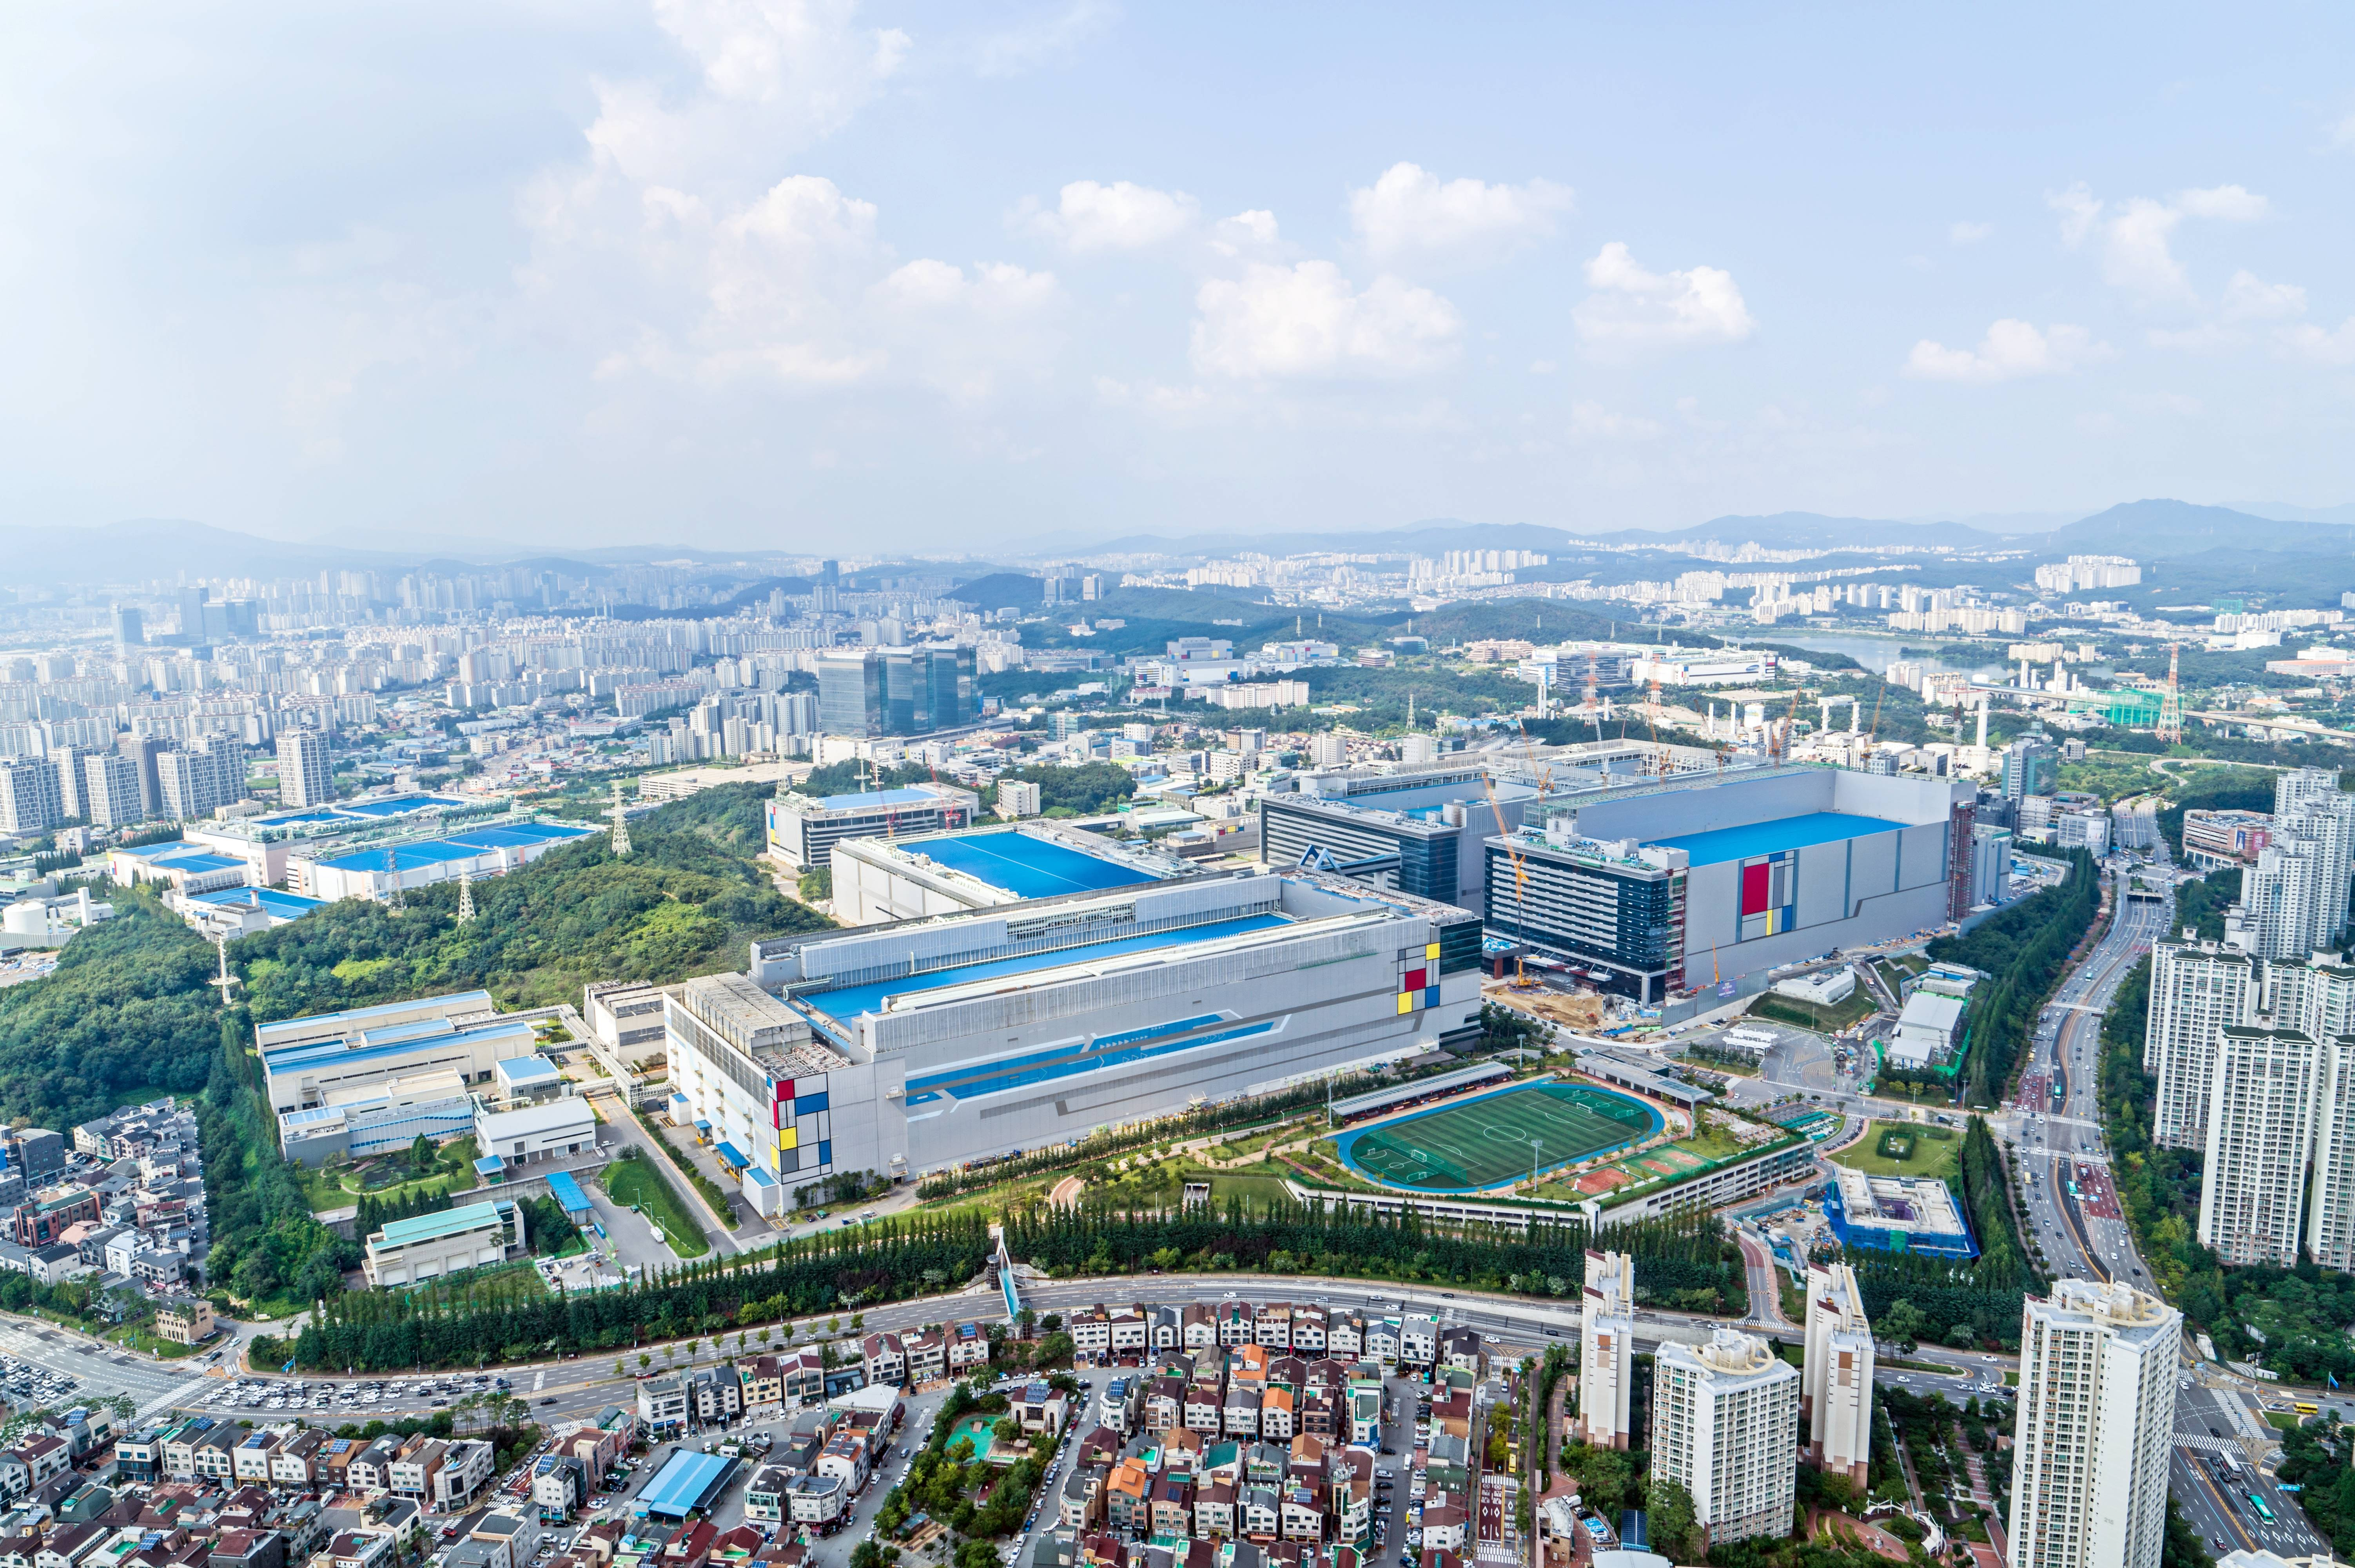 Samsung Hwaseong Campus, one of Samsung's main chip manufacturing bases is located in Giheung, South Korea.